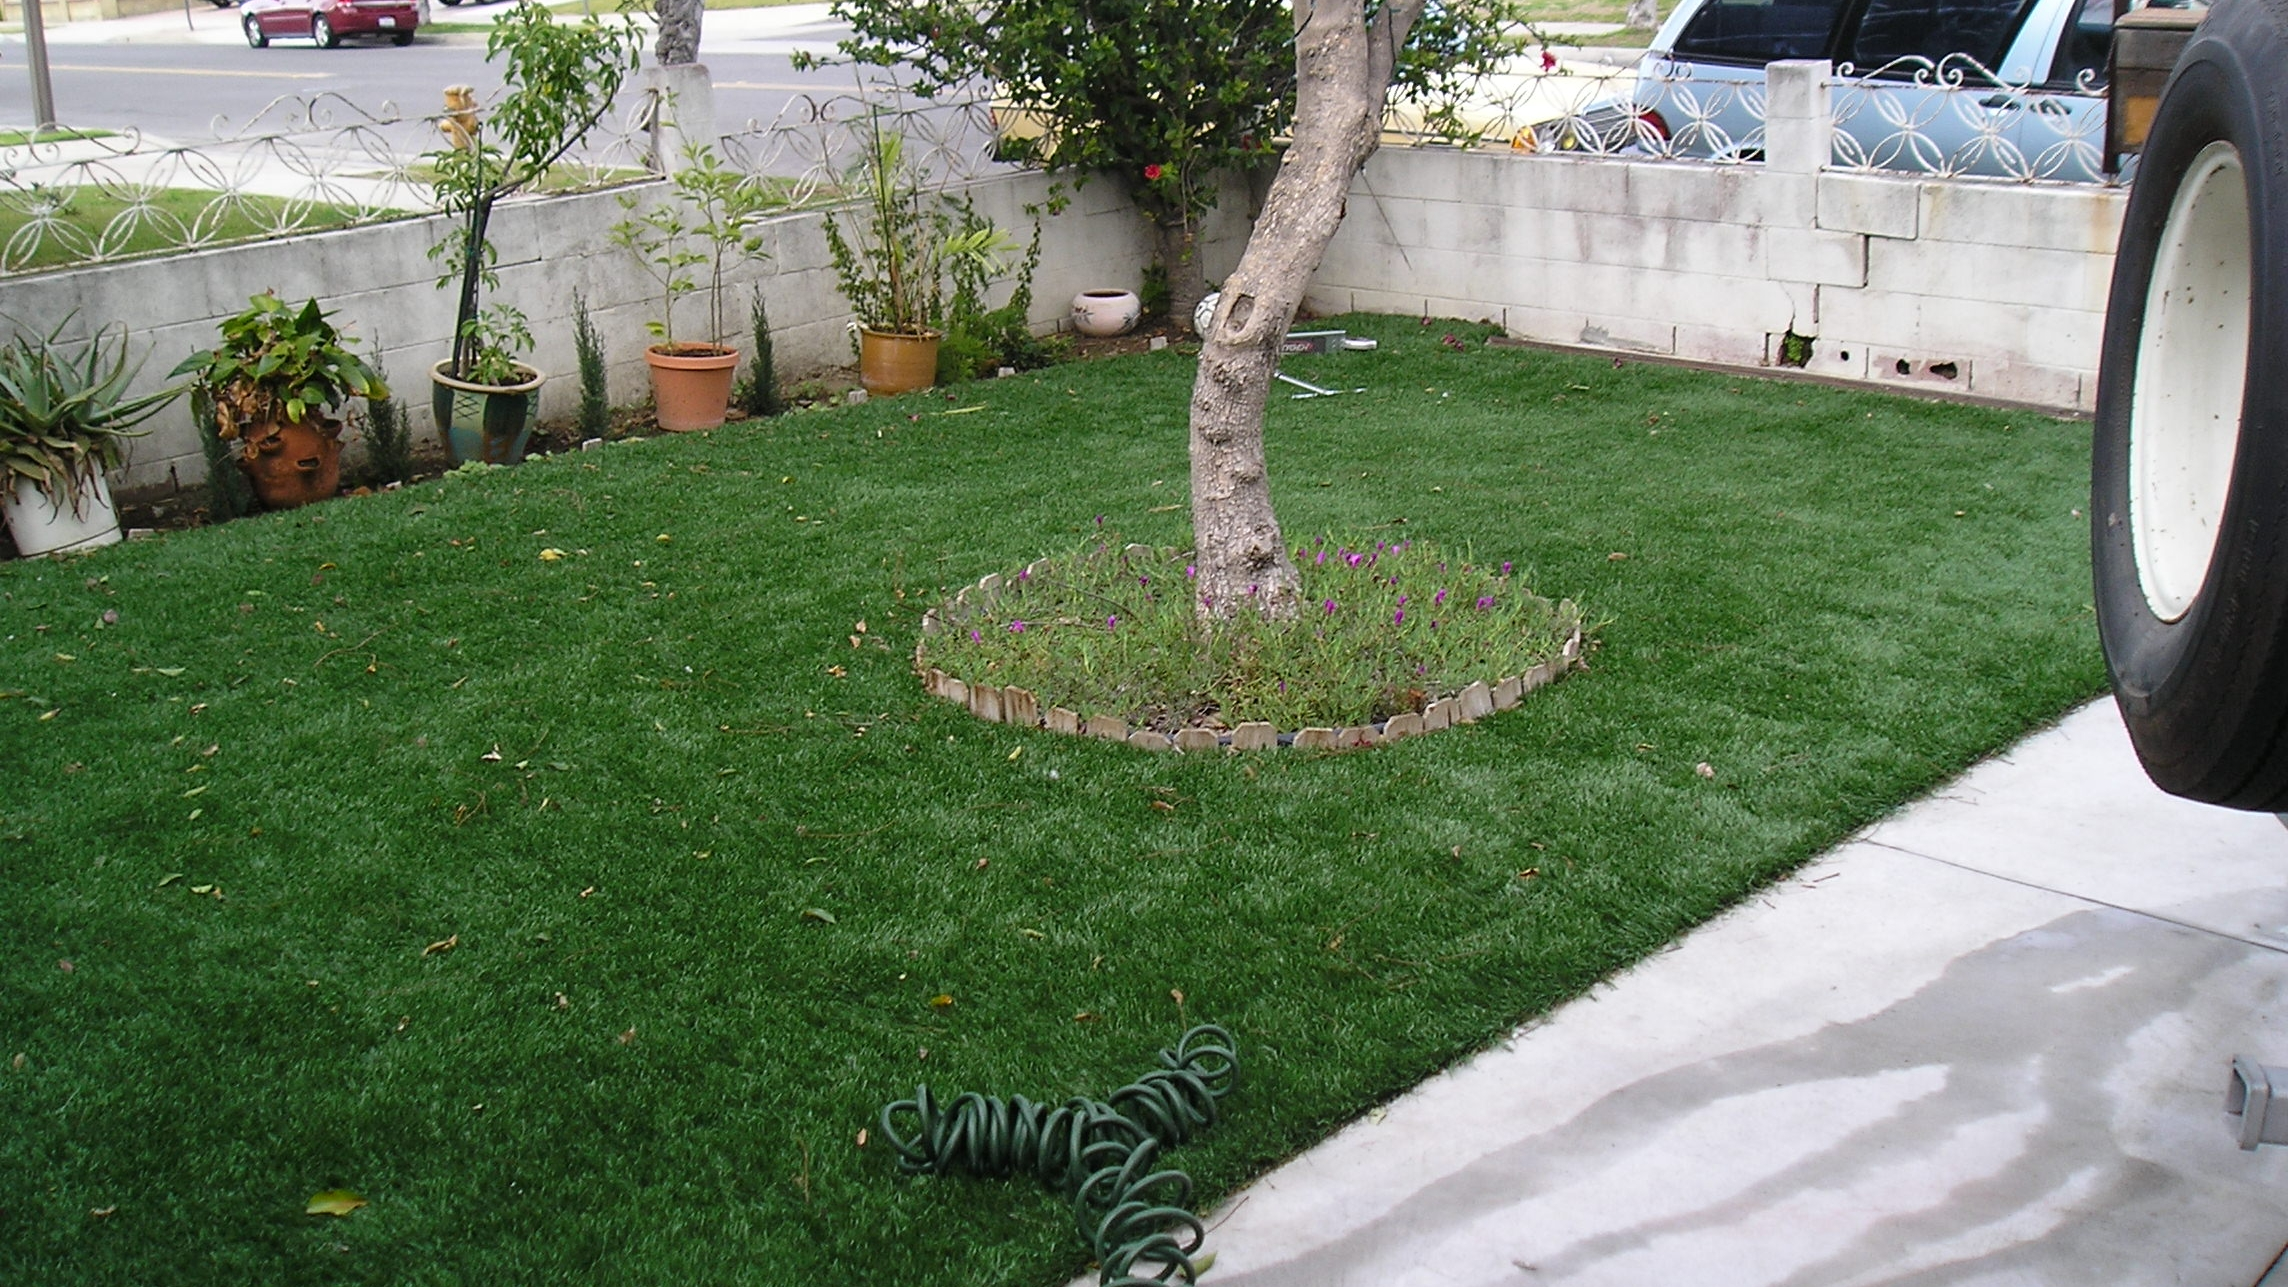 Cool Blue Hollow Lime most realistic artificial grass,realistic artificial grass